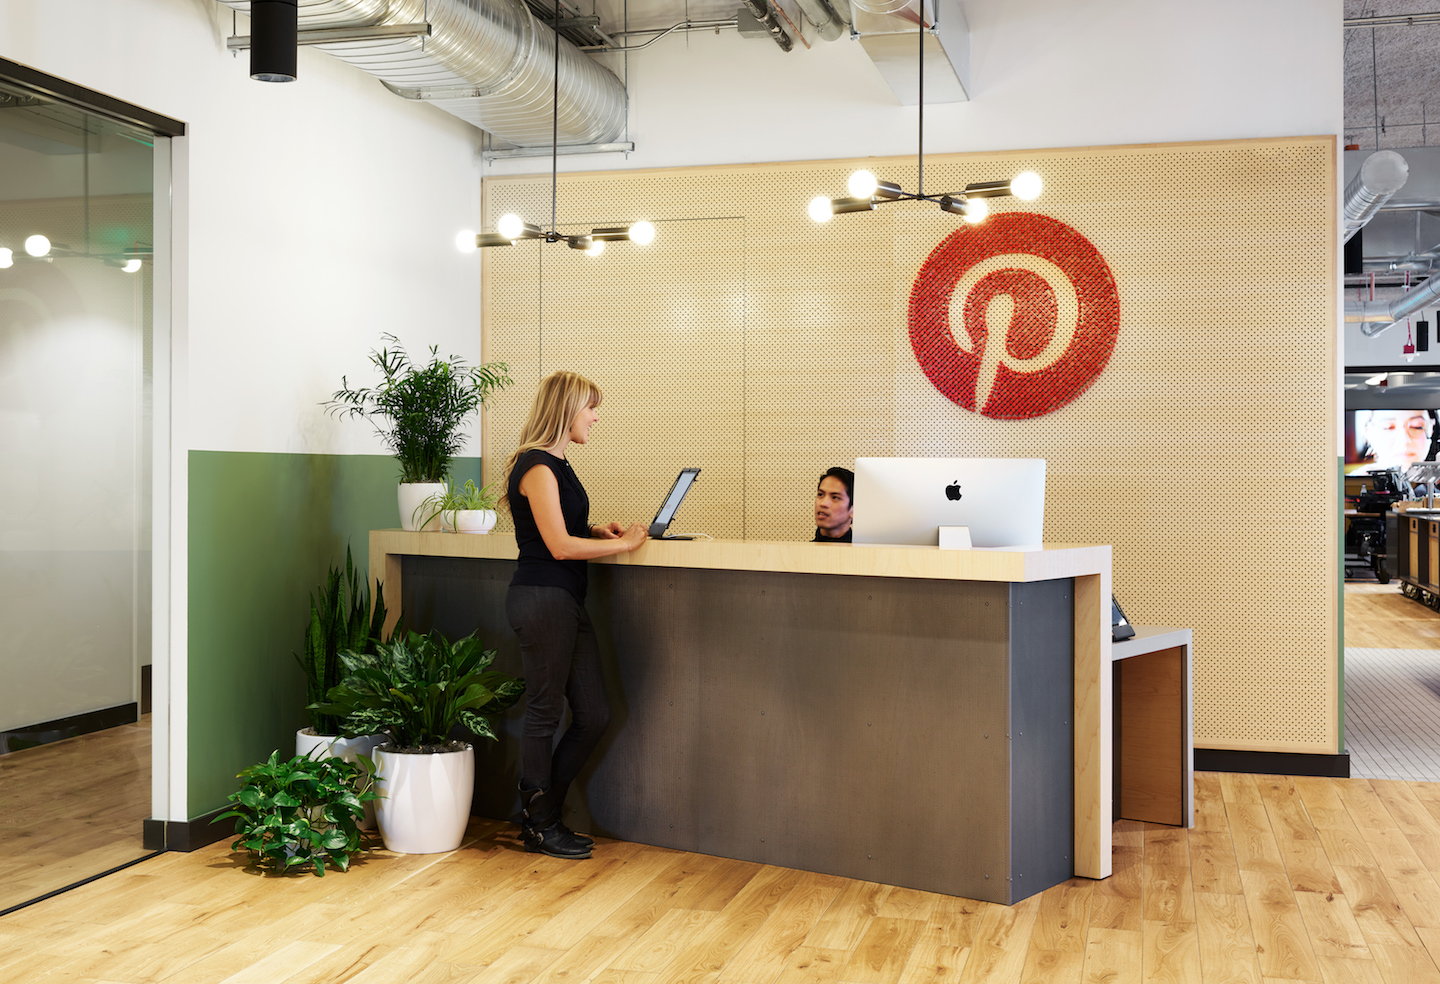 Pinterest's office at WeWork Denny Triangle. Photographs by Kevin Scott